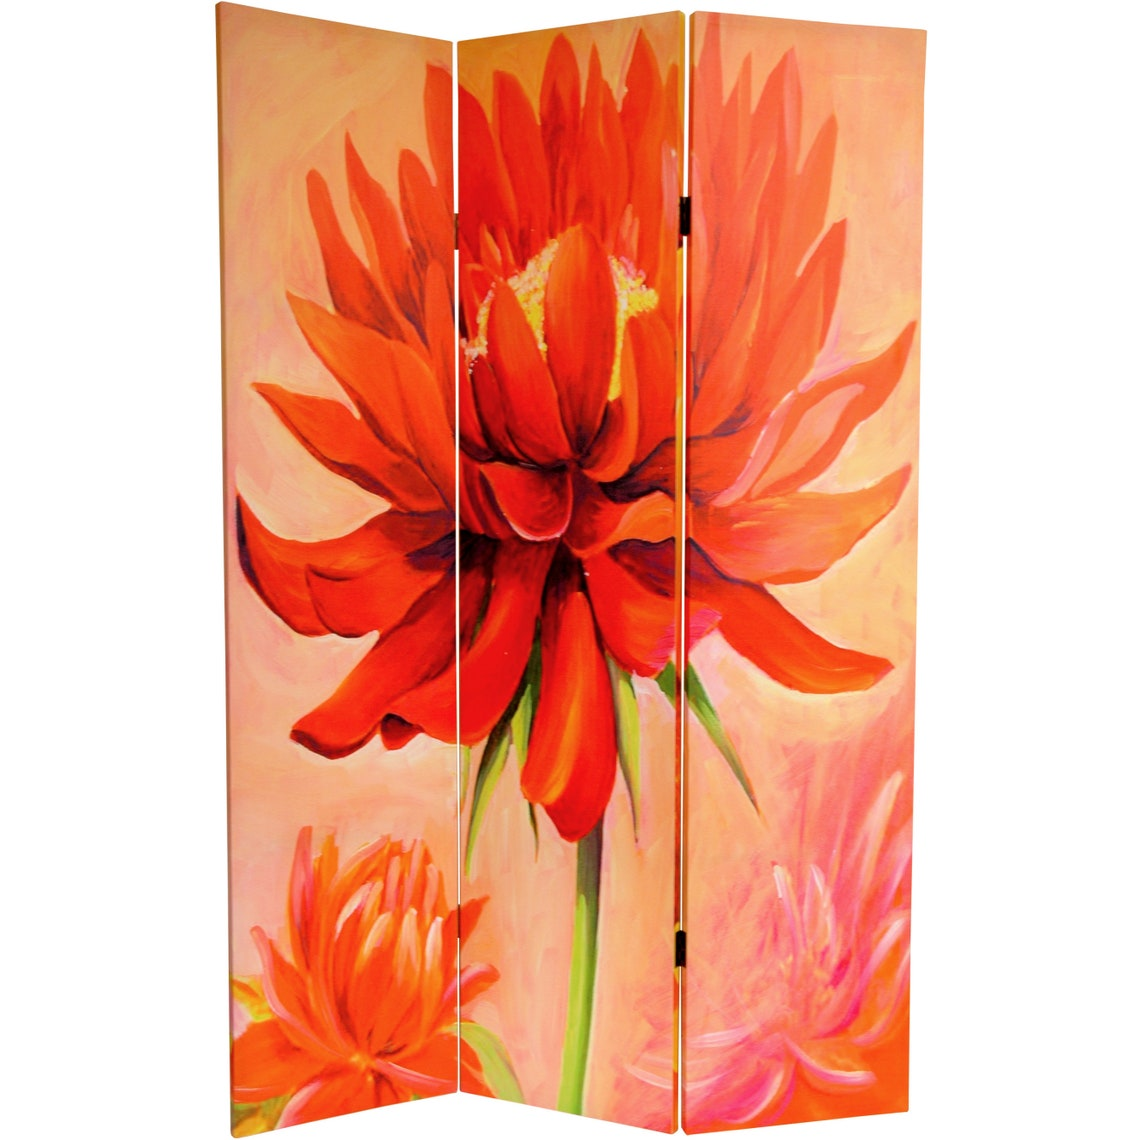 6 ft. Tall Double Sided Poppies and Sunflowers Canvas Room Divider